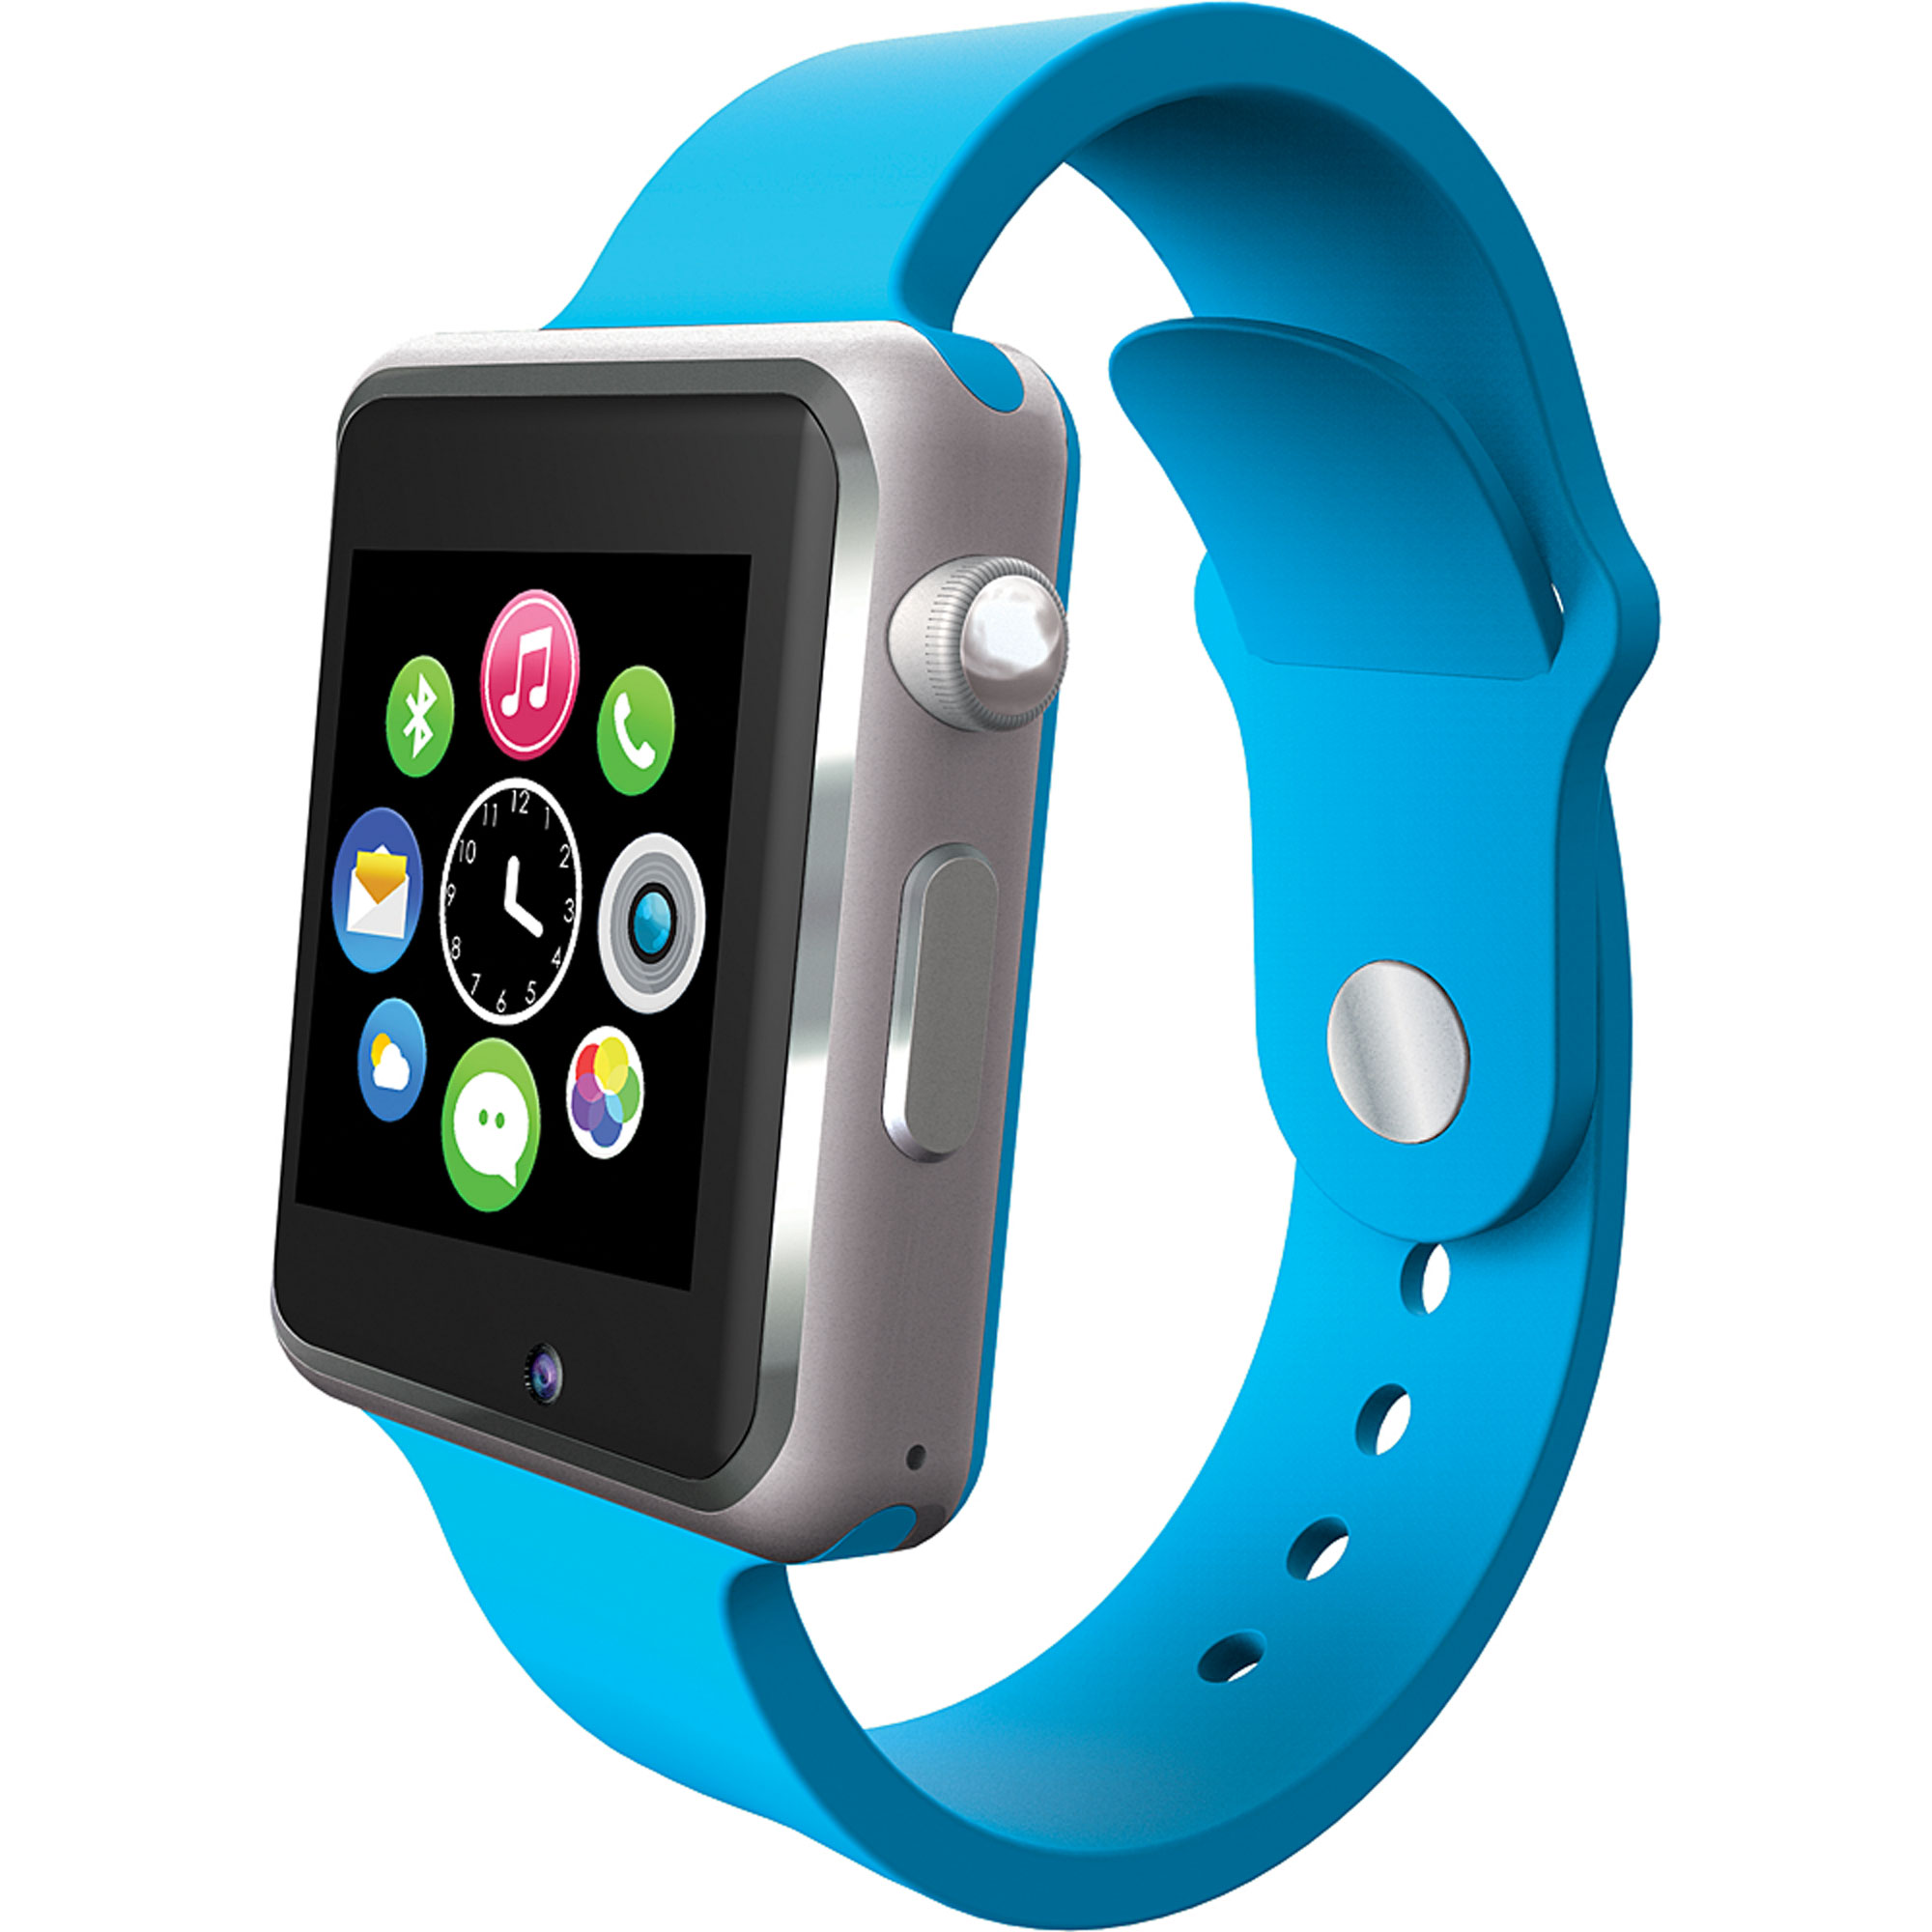 future and present green smartwatch top of smart watches past the